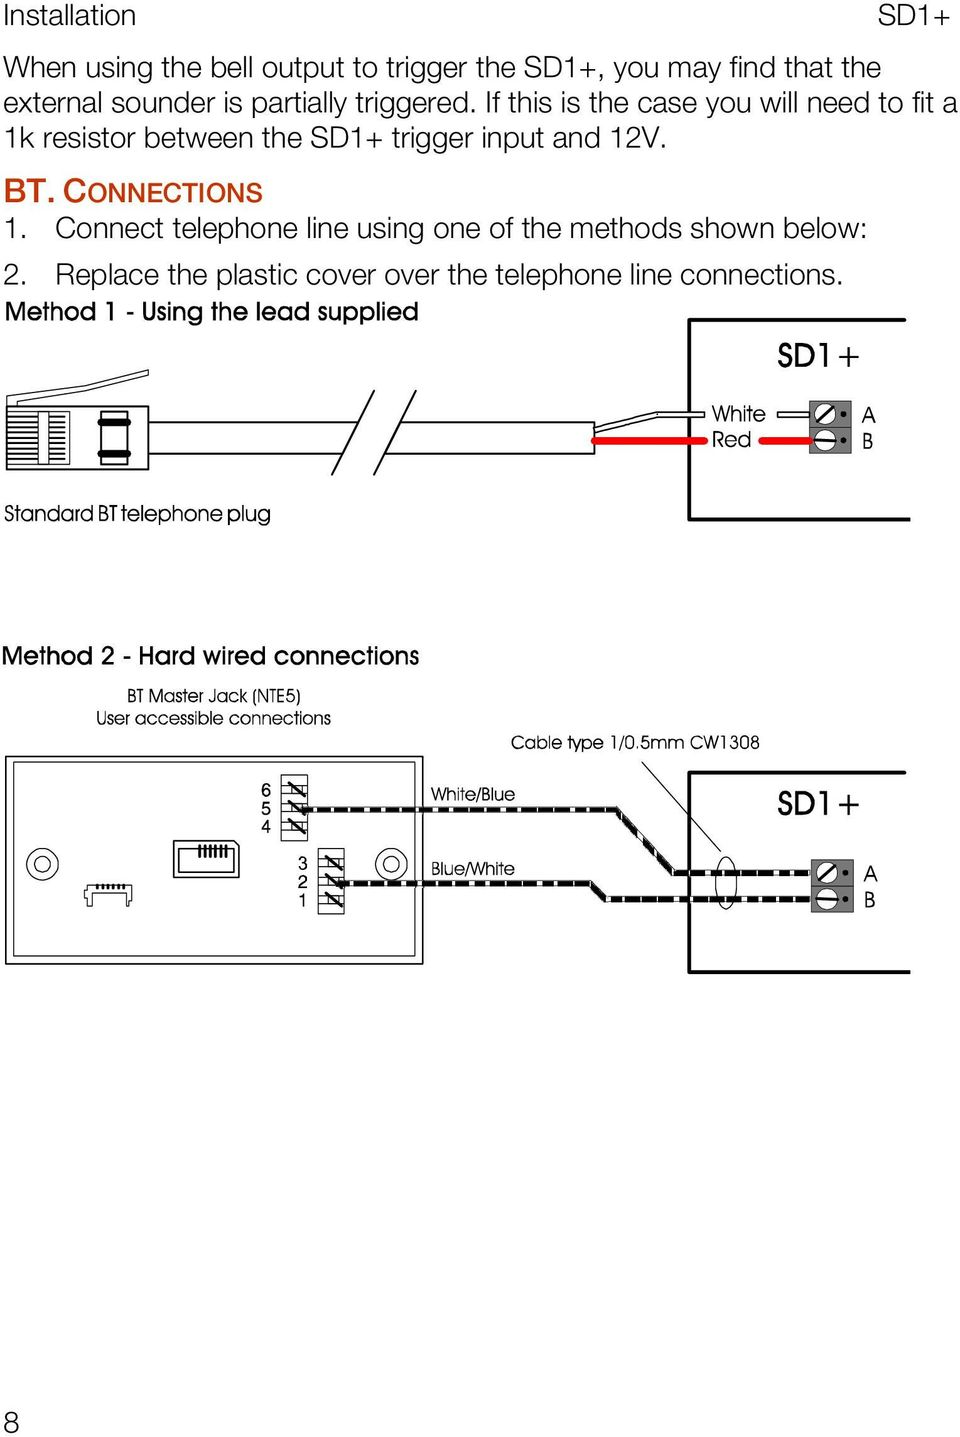 Installation And Programming Guide Pdf Uk Telephone Wiring Diagram If This Is The Case You Will Need To Fit A 1k Resistor Between Trigger